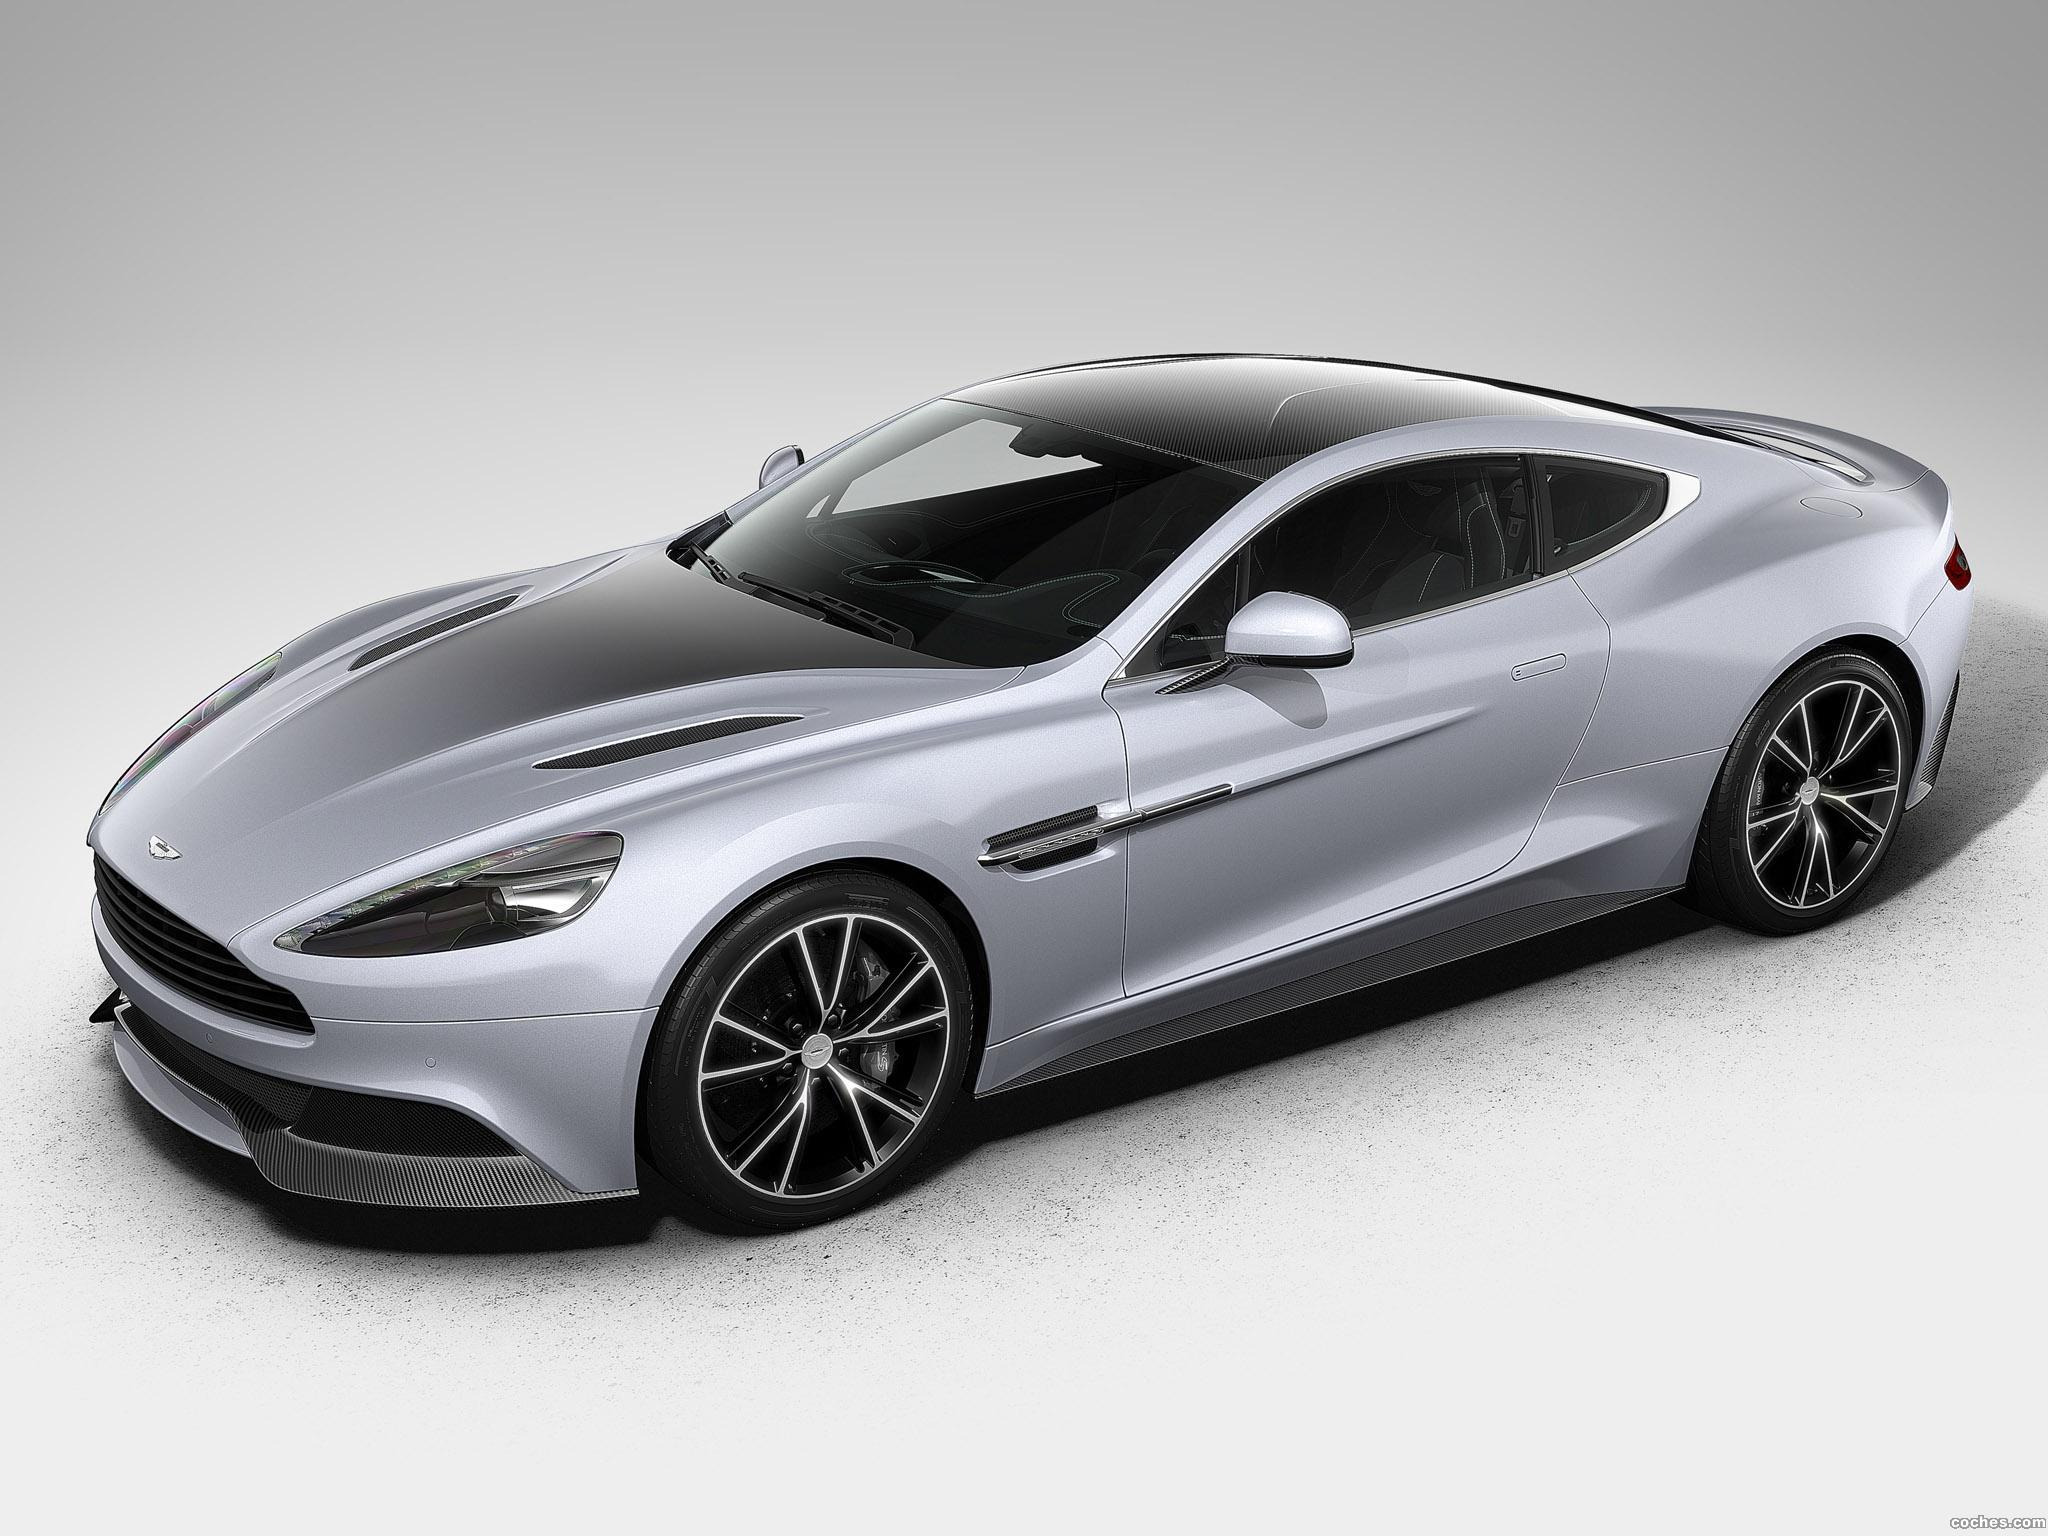 Foto 0 de Aston Martin anquish Centenary Edition 2013